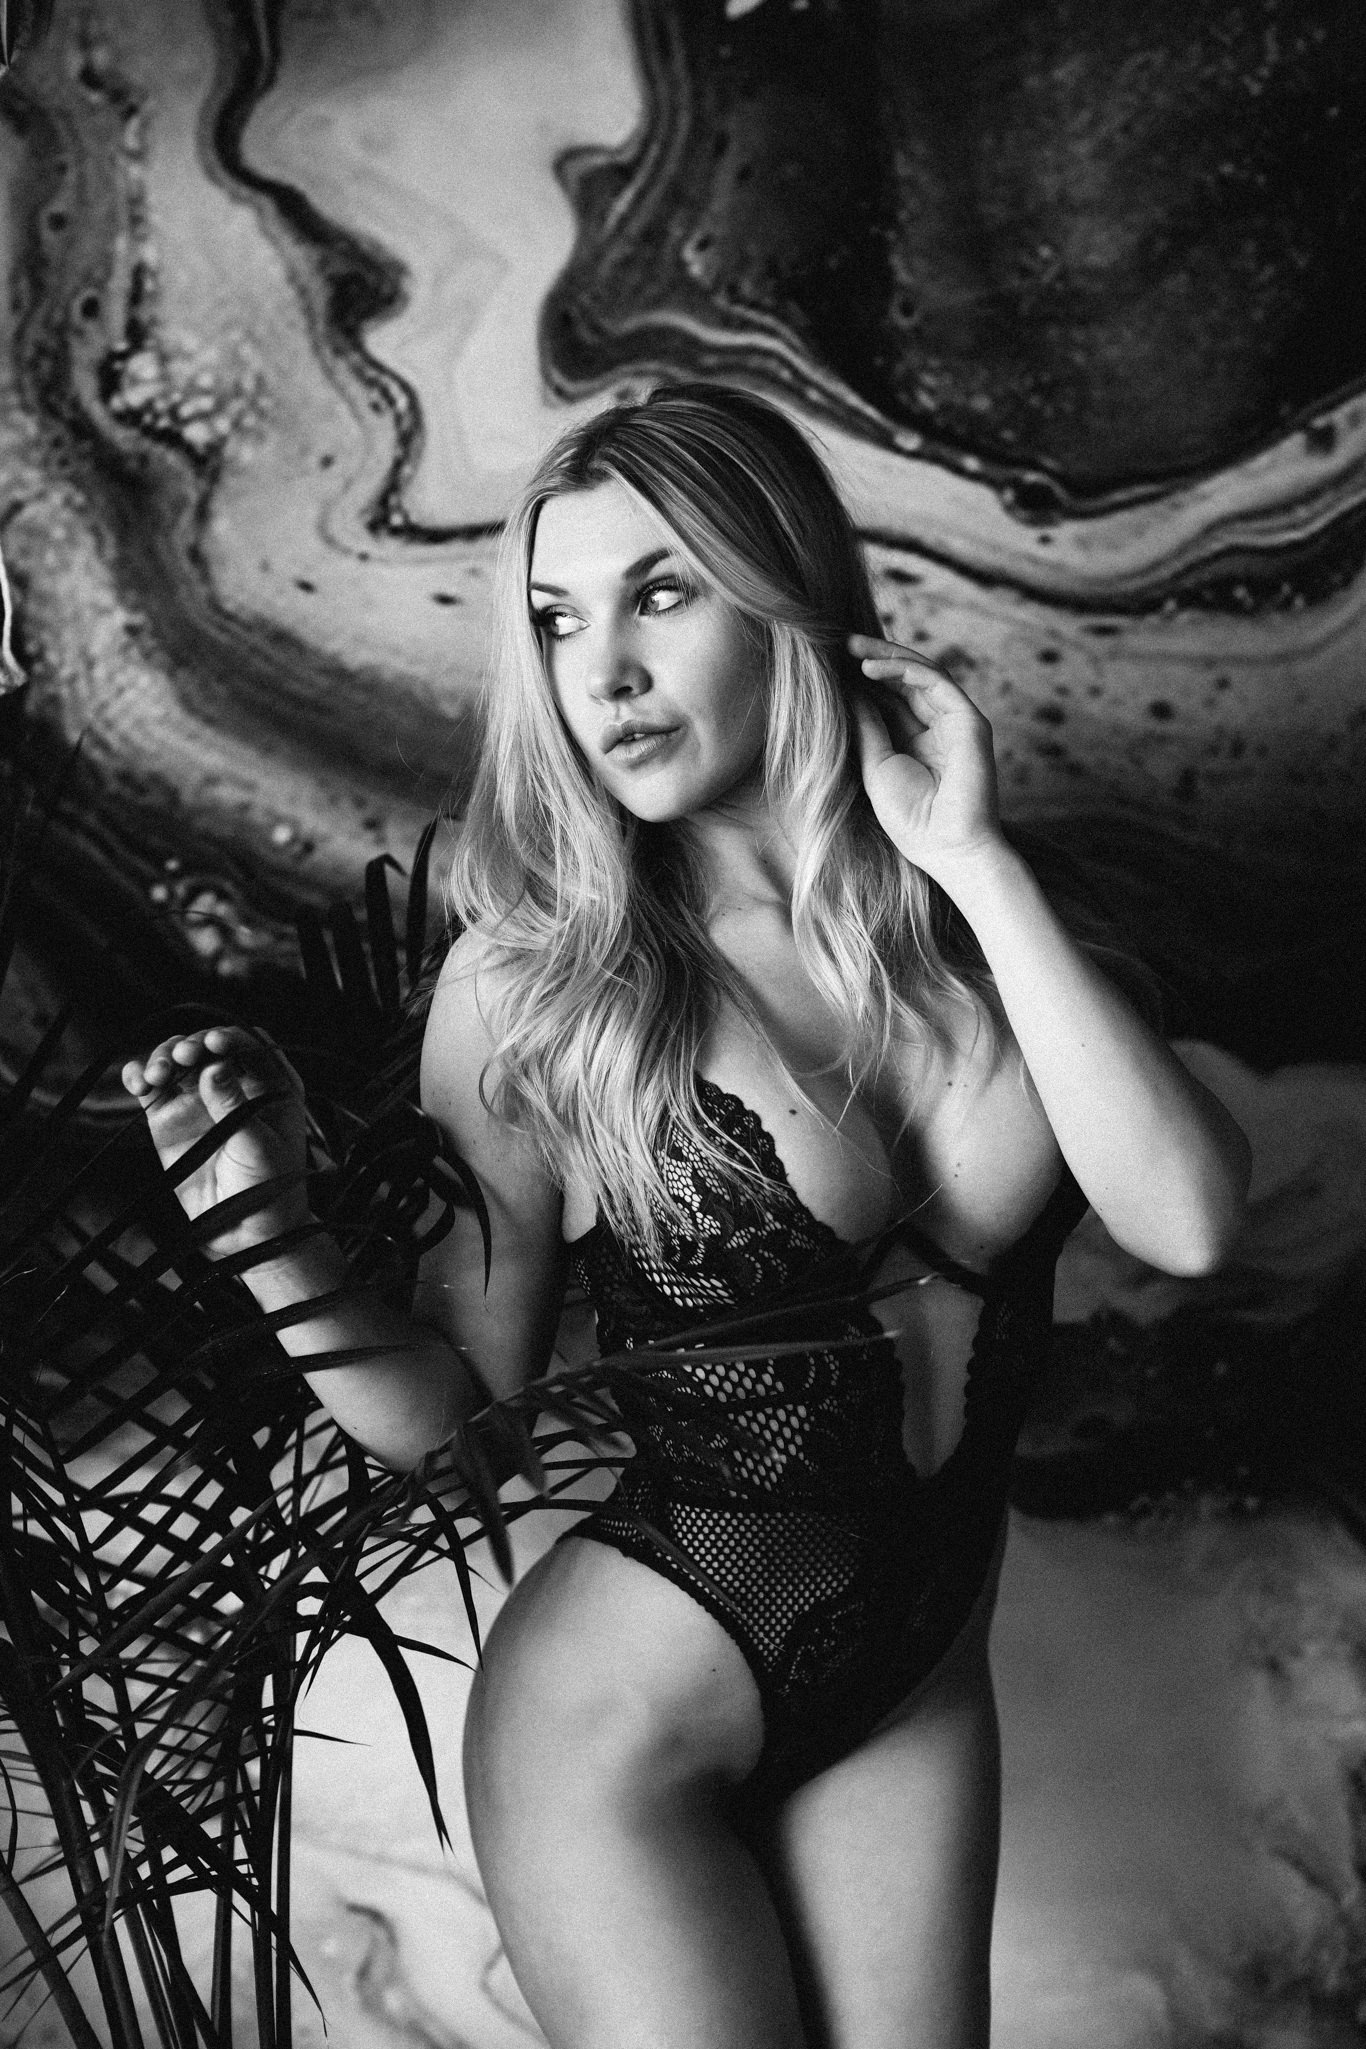 calgary-boudoir-photoshoot-winner-10